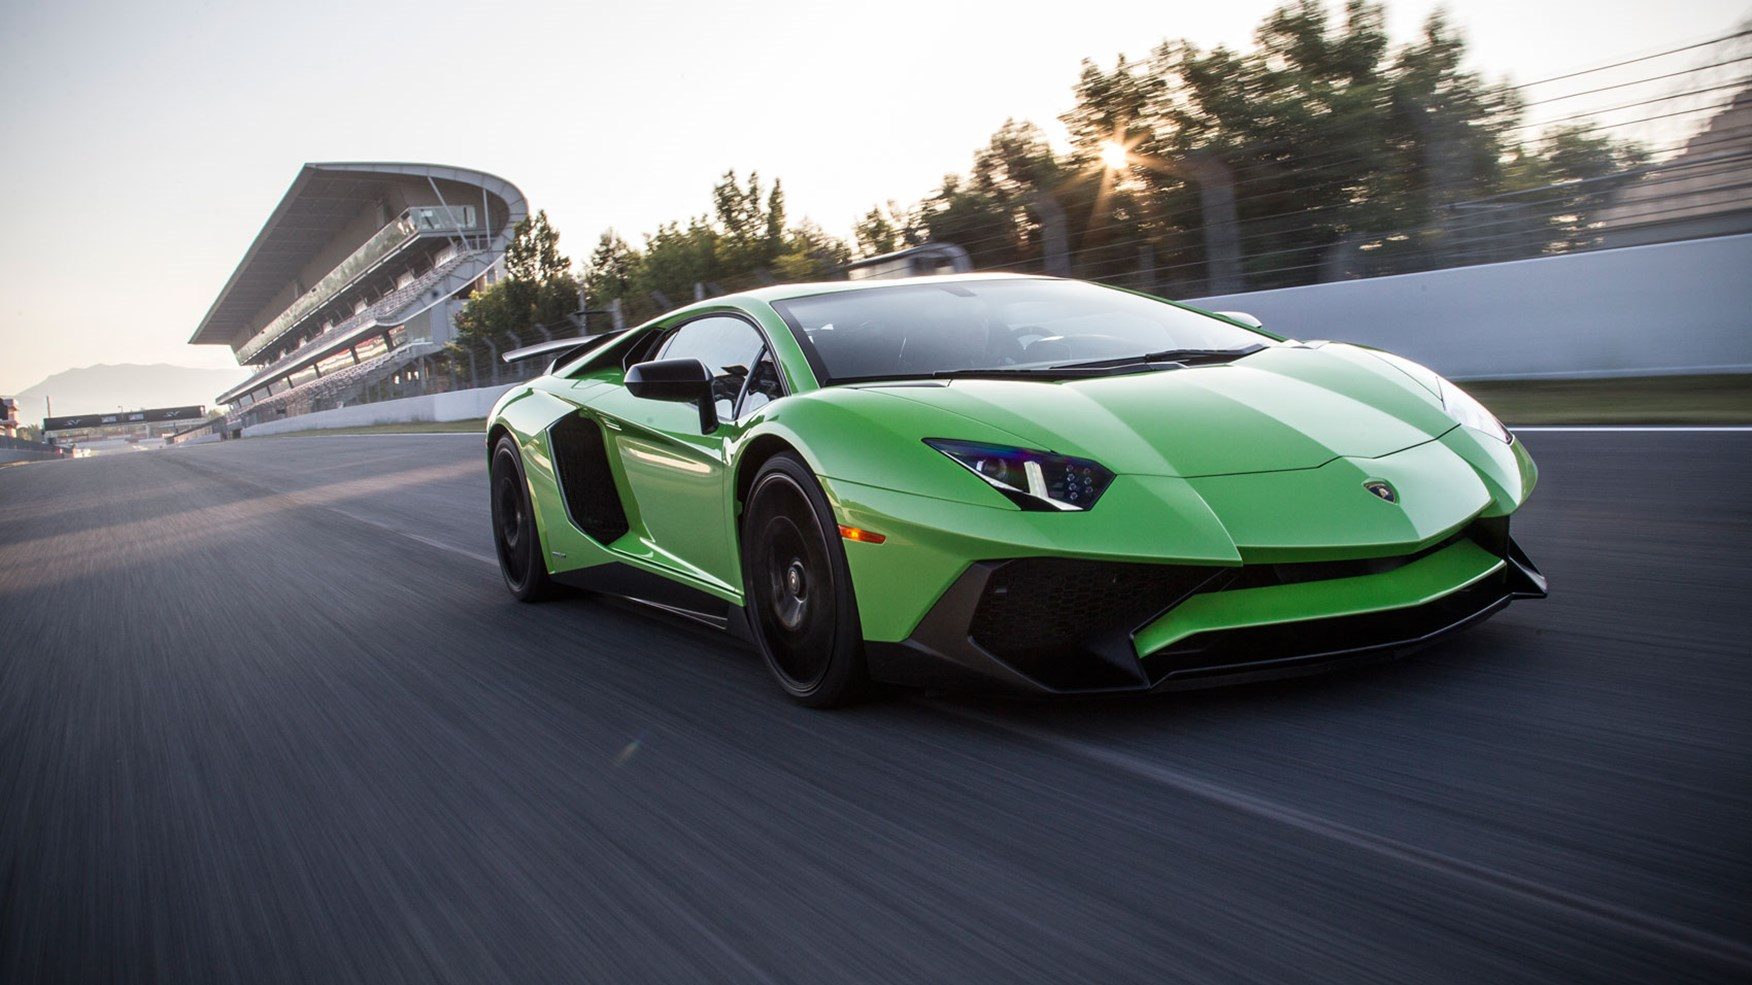 lamborghini car hd wallpaper download